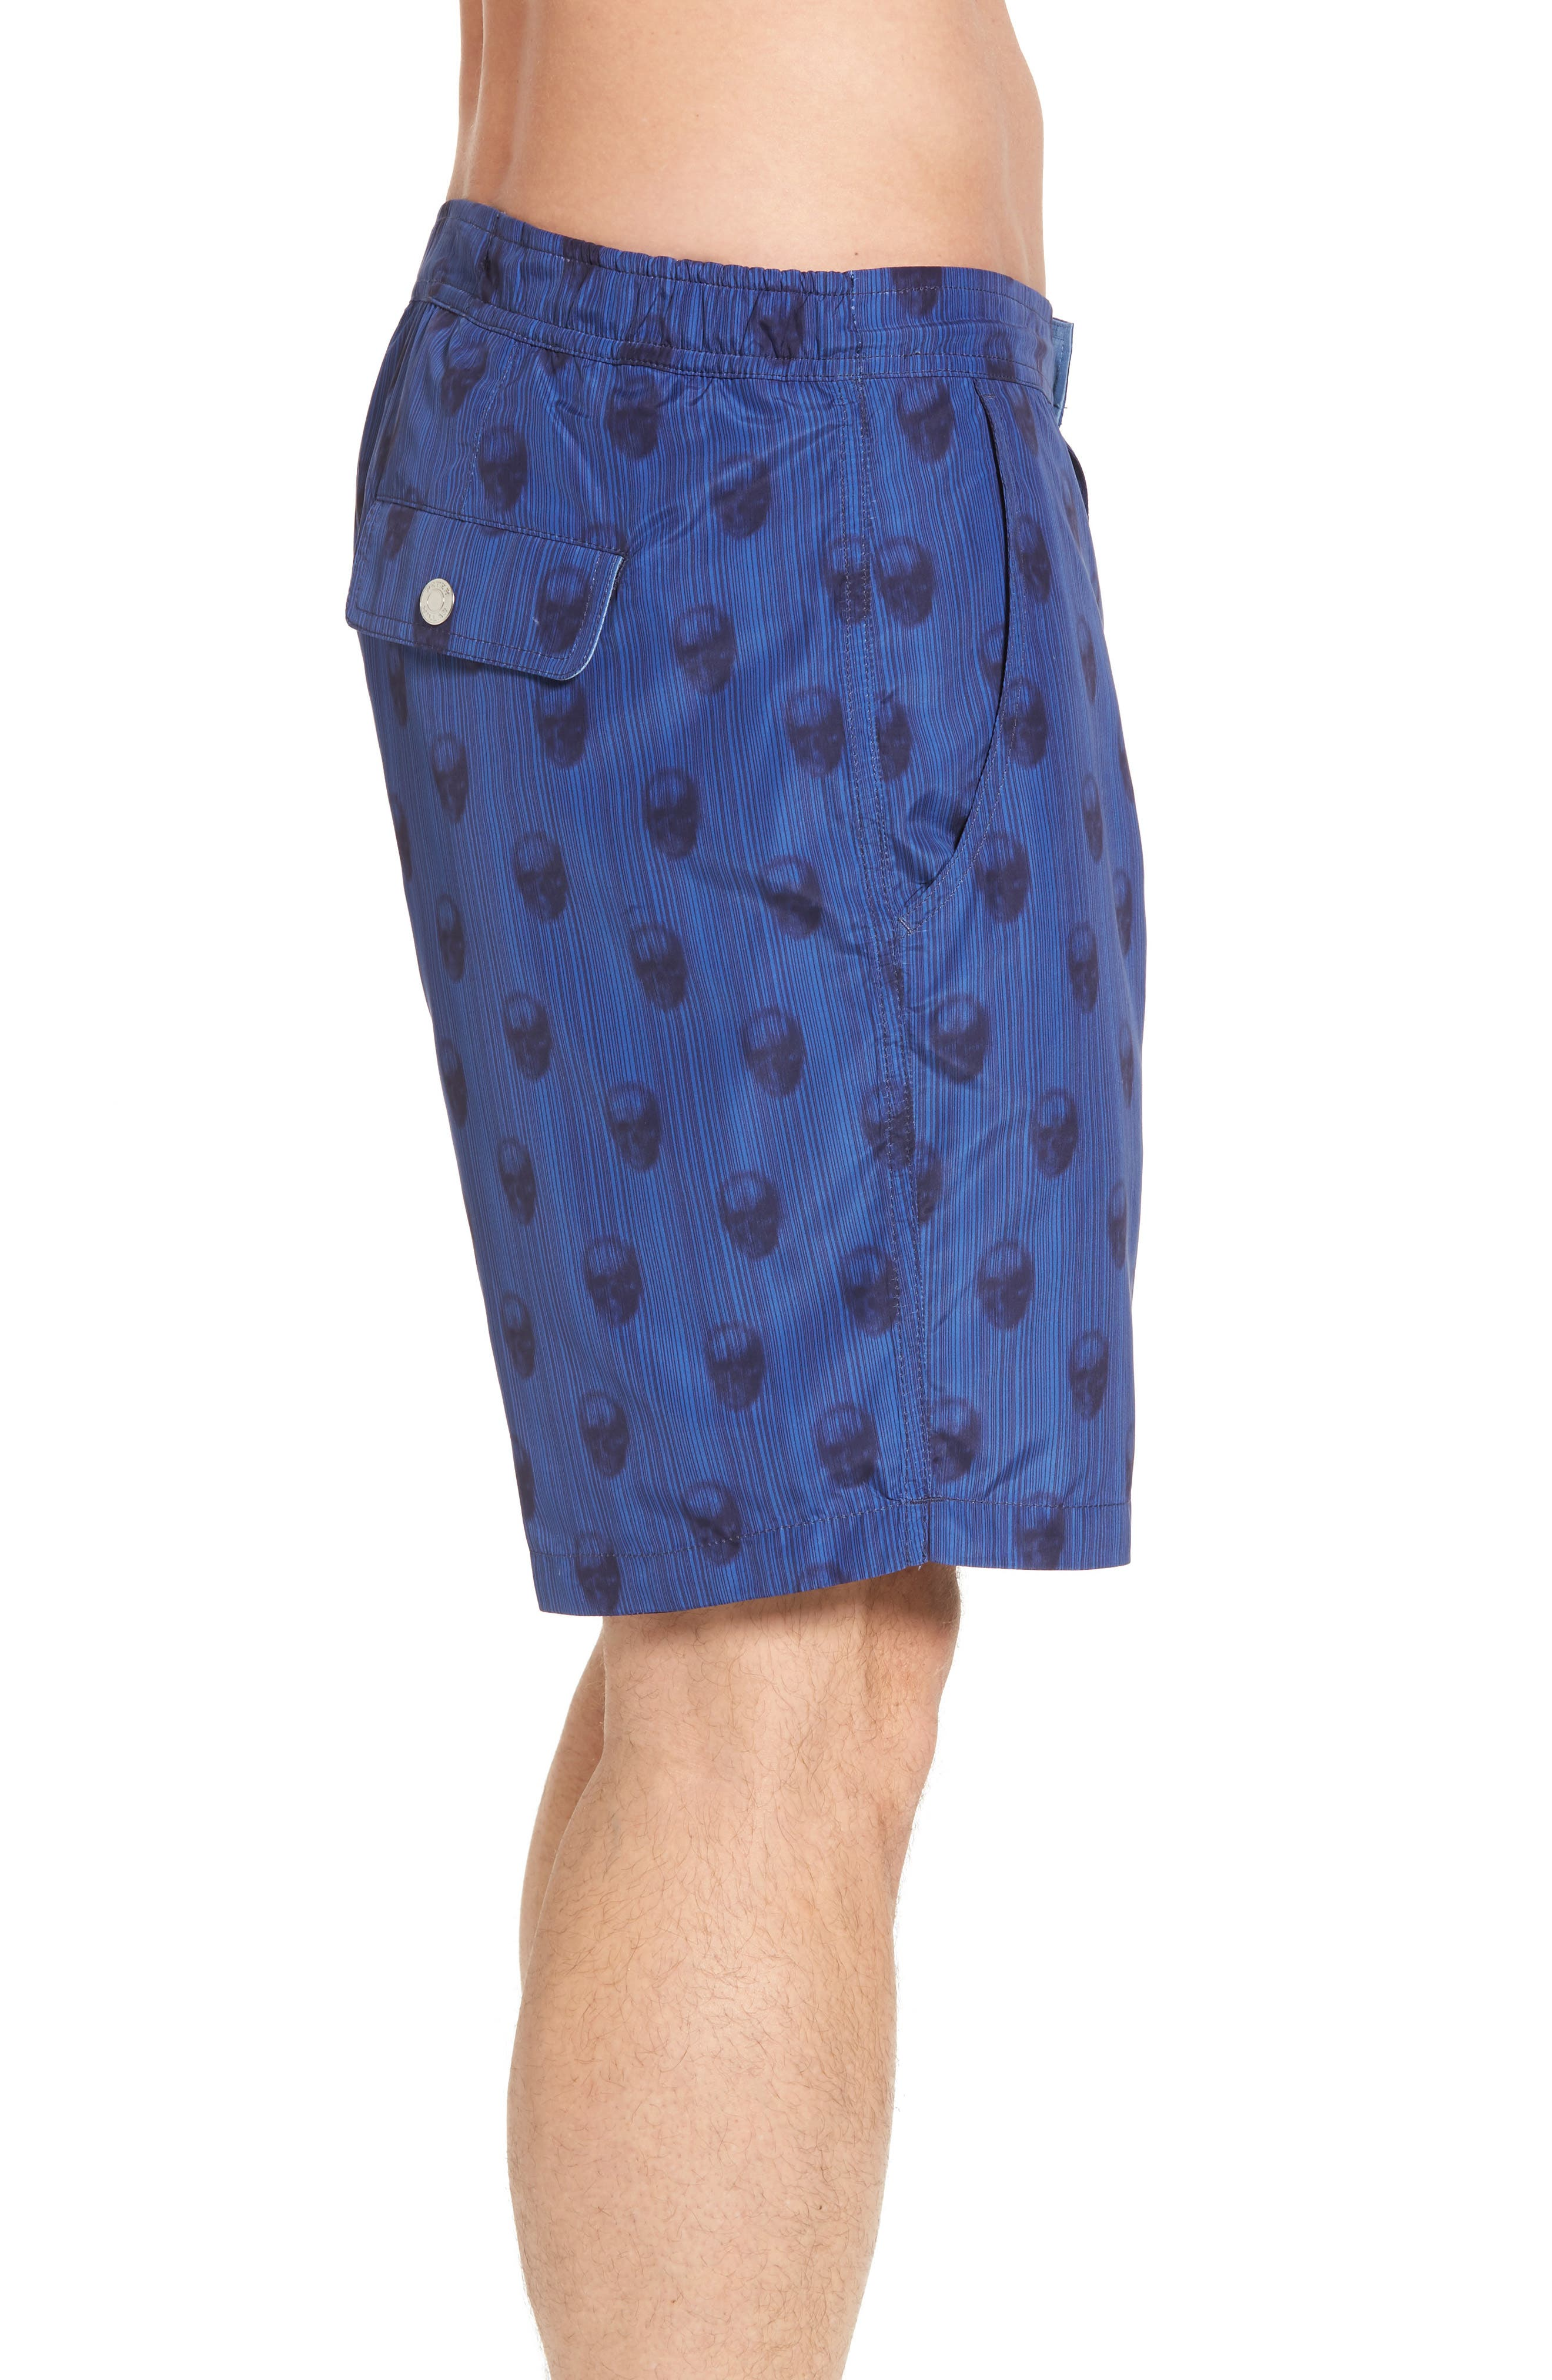 Peter Millar Black Jack's Bay Swim Trunks,                             Alternate thumbnail 3, color,                             440